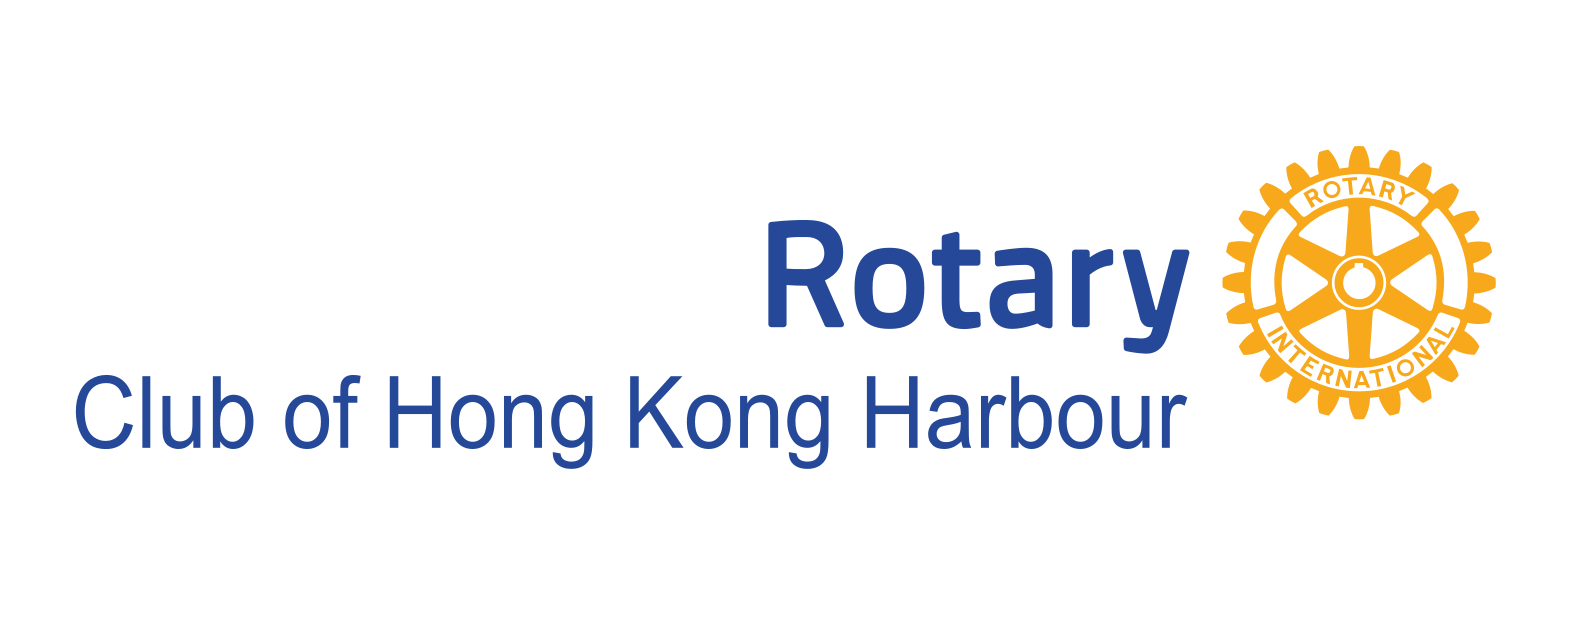 Rotary Club of Hong Kong Harbour logo